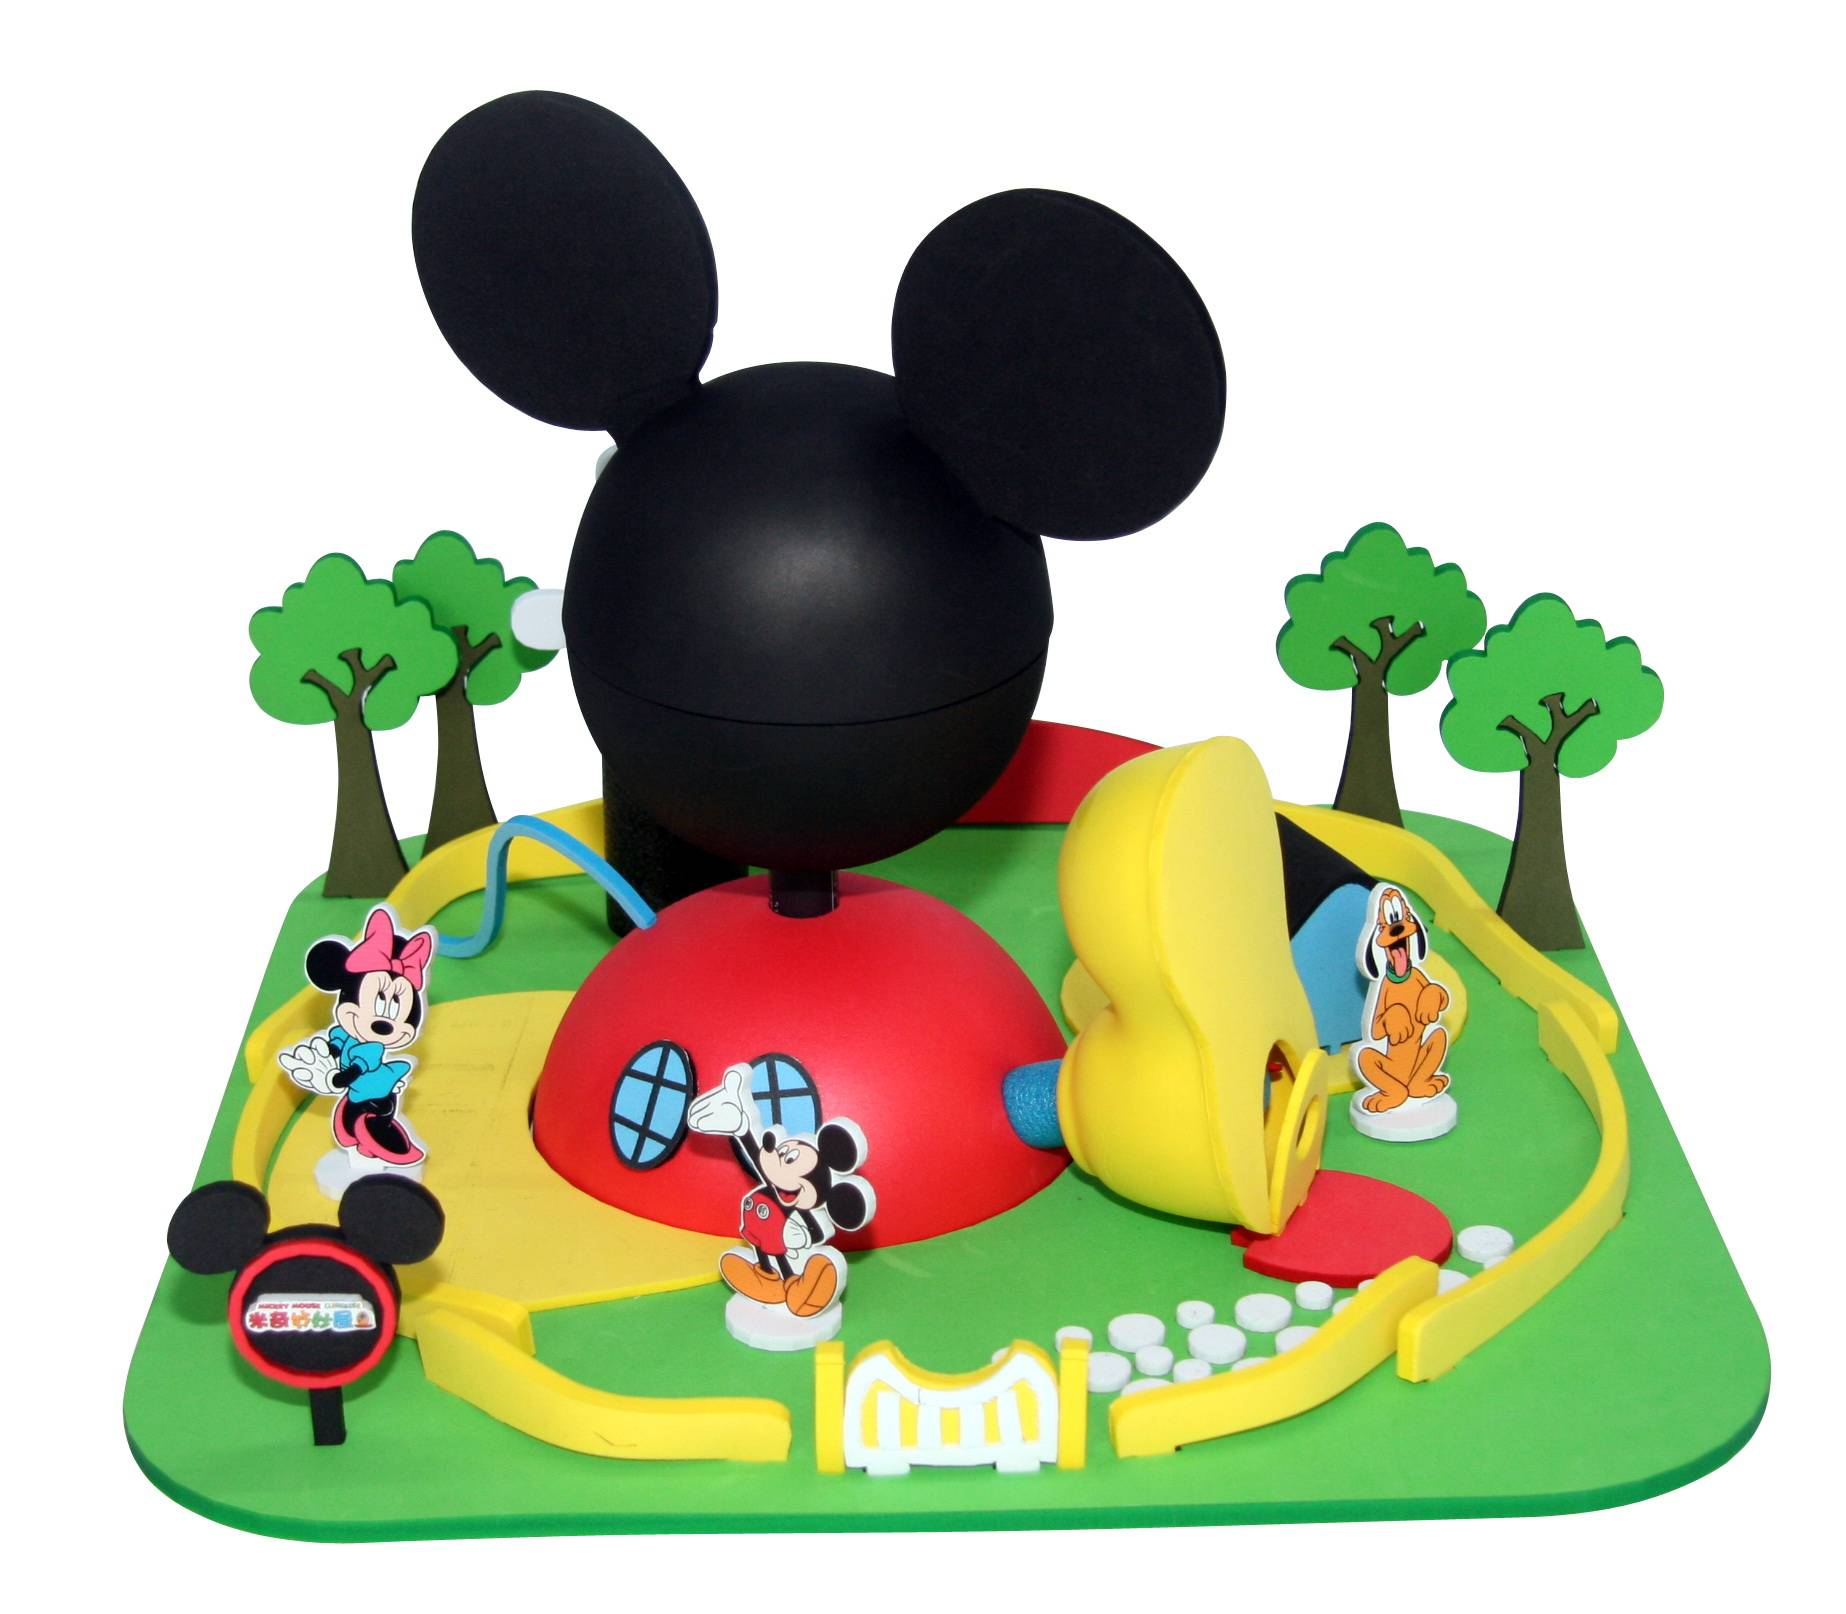 Mickey Mouse Clubhouse Educational Toys_2532641 on The Town Mouse And Country